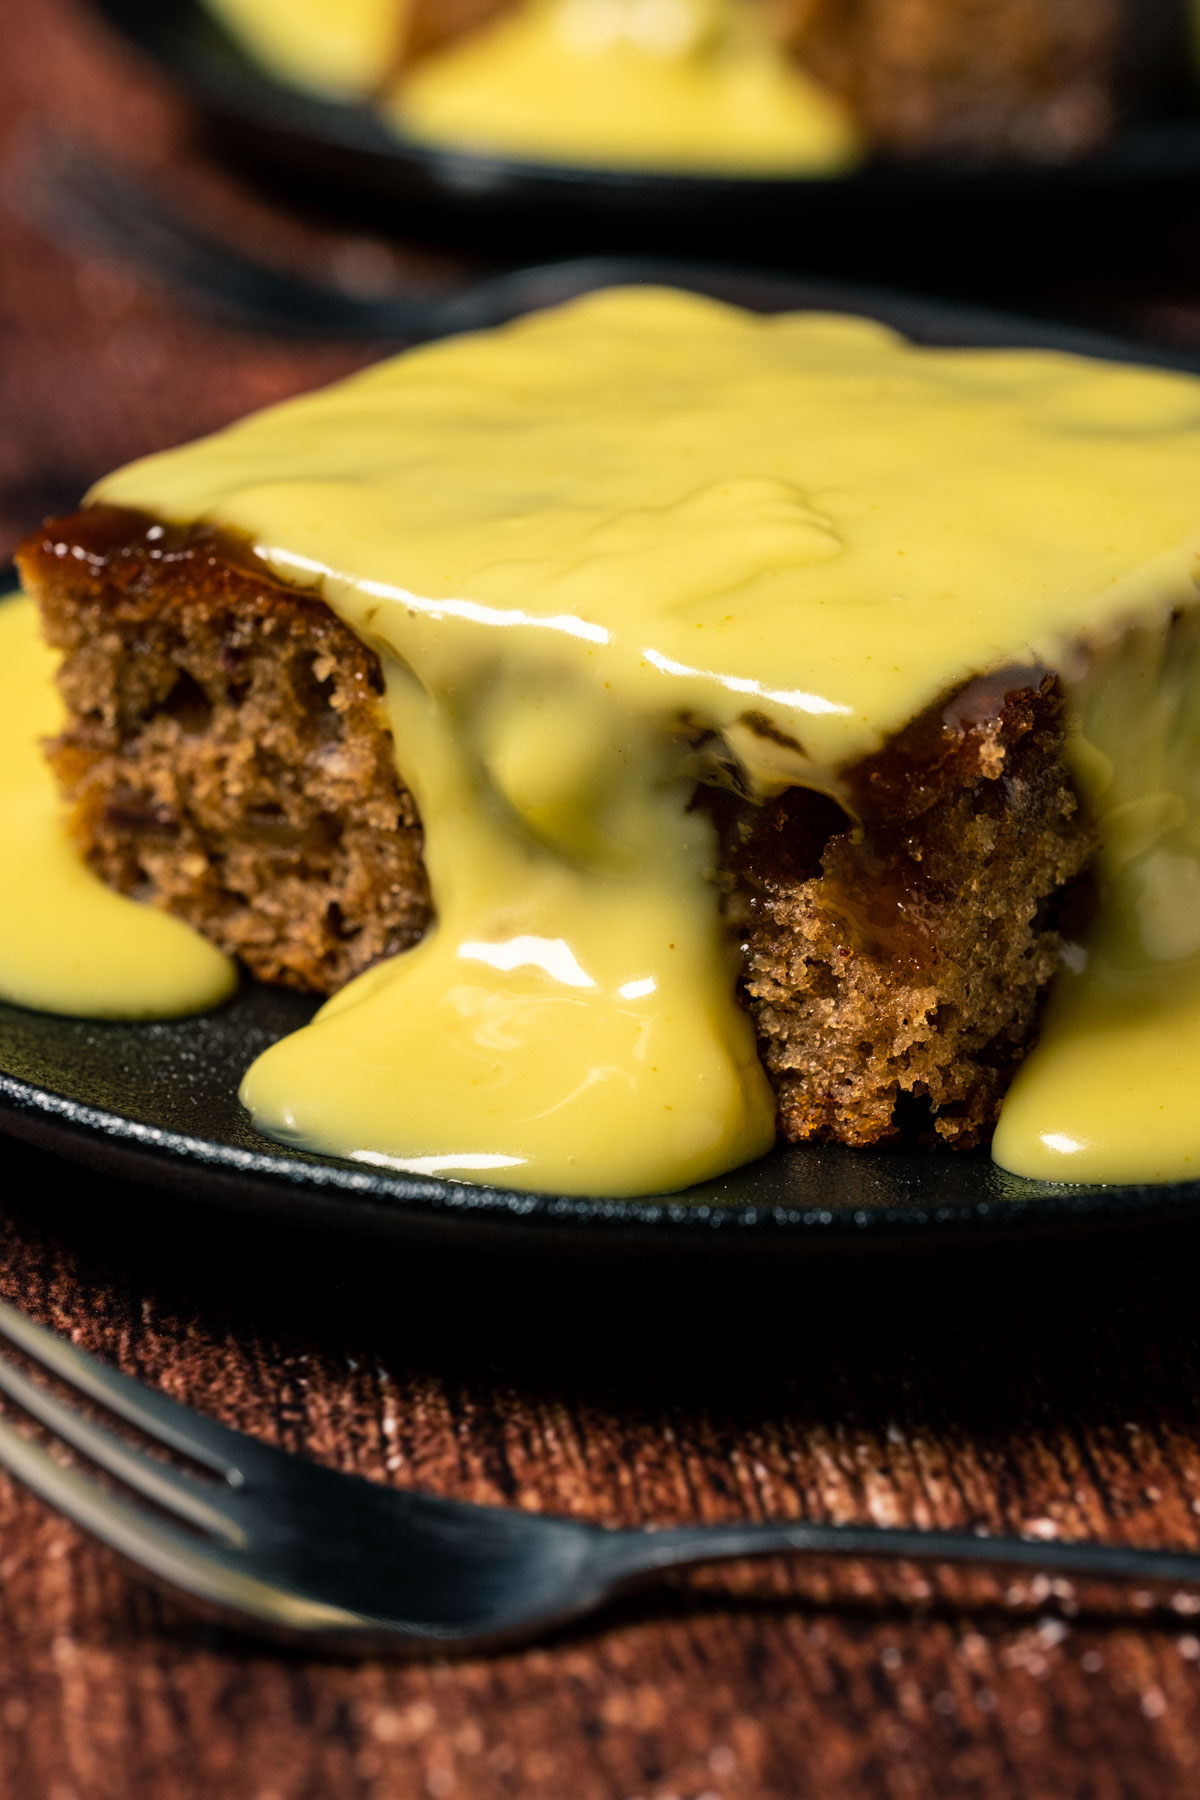 A slice of sticky toffee pudding topped with custard.